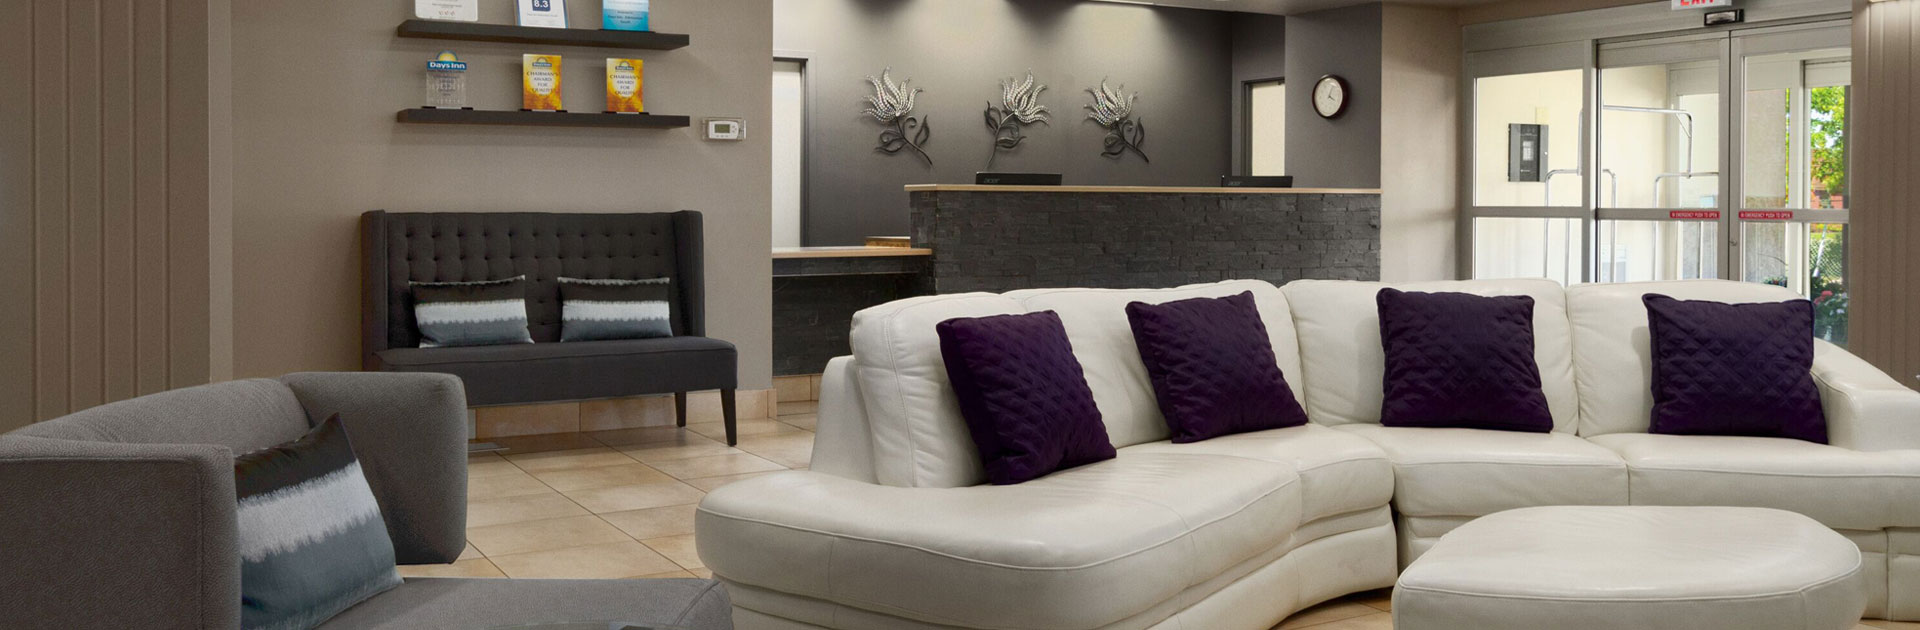 The hotel lobby of d3h Days Inn Edmonton South is furnished with comfortable seating: an elephant gray chair with truncated arms, a charcoal gray loveseat and a two piece plush white sectional sofa (with matching ottoman)  adorned with eggplant purple accent pillows.  The check-in counter is constructed of charcoal gray brick stone, with the matching back wall of the check-in area mounted with three metallic floral art pieces.